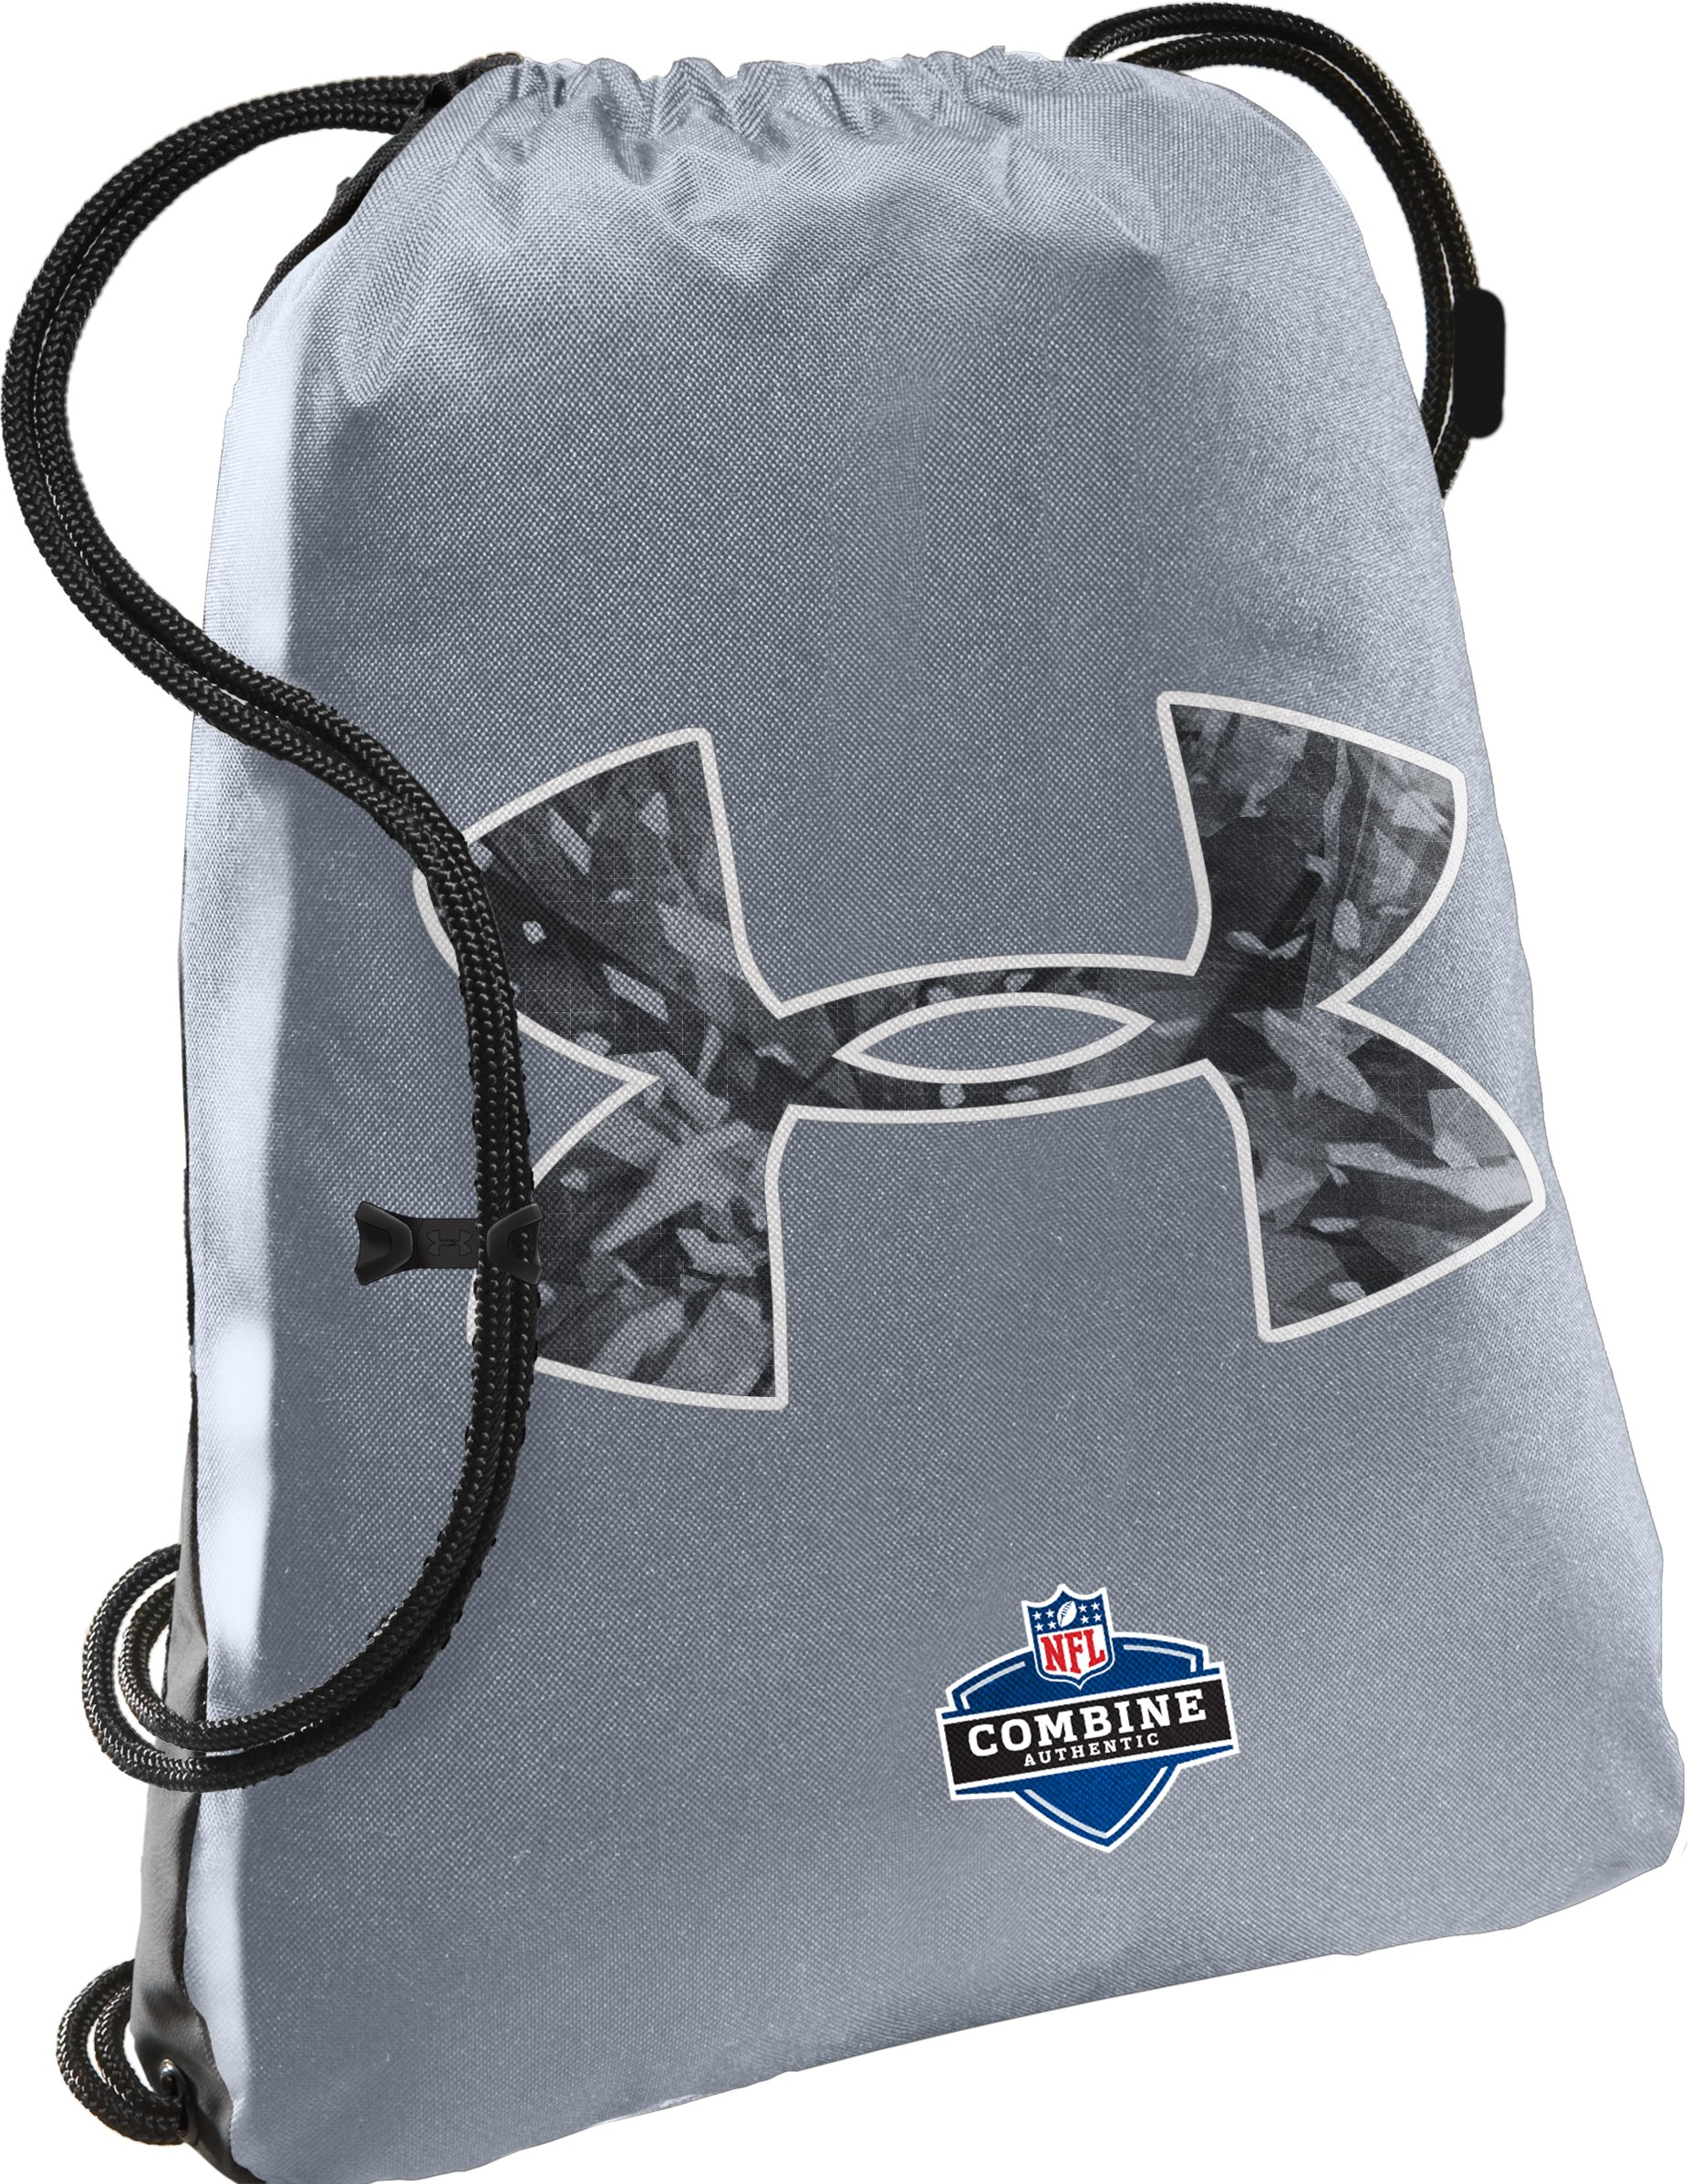 NFL Combine Authentic Tyro Sackpack, Steel